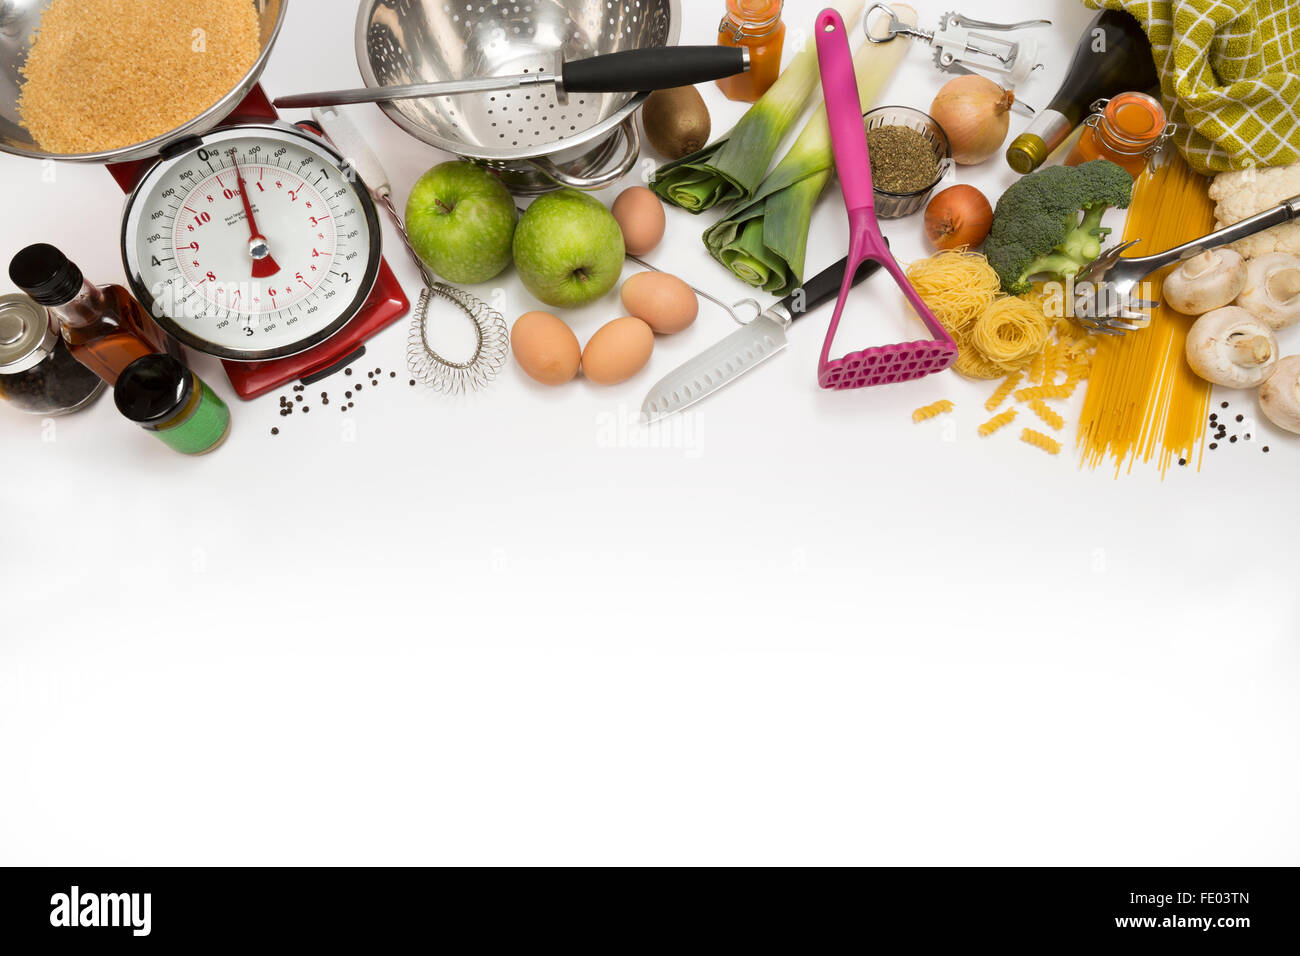 Cooking utensils, Food, Kitchen with Space for Text - Stock Image